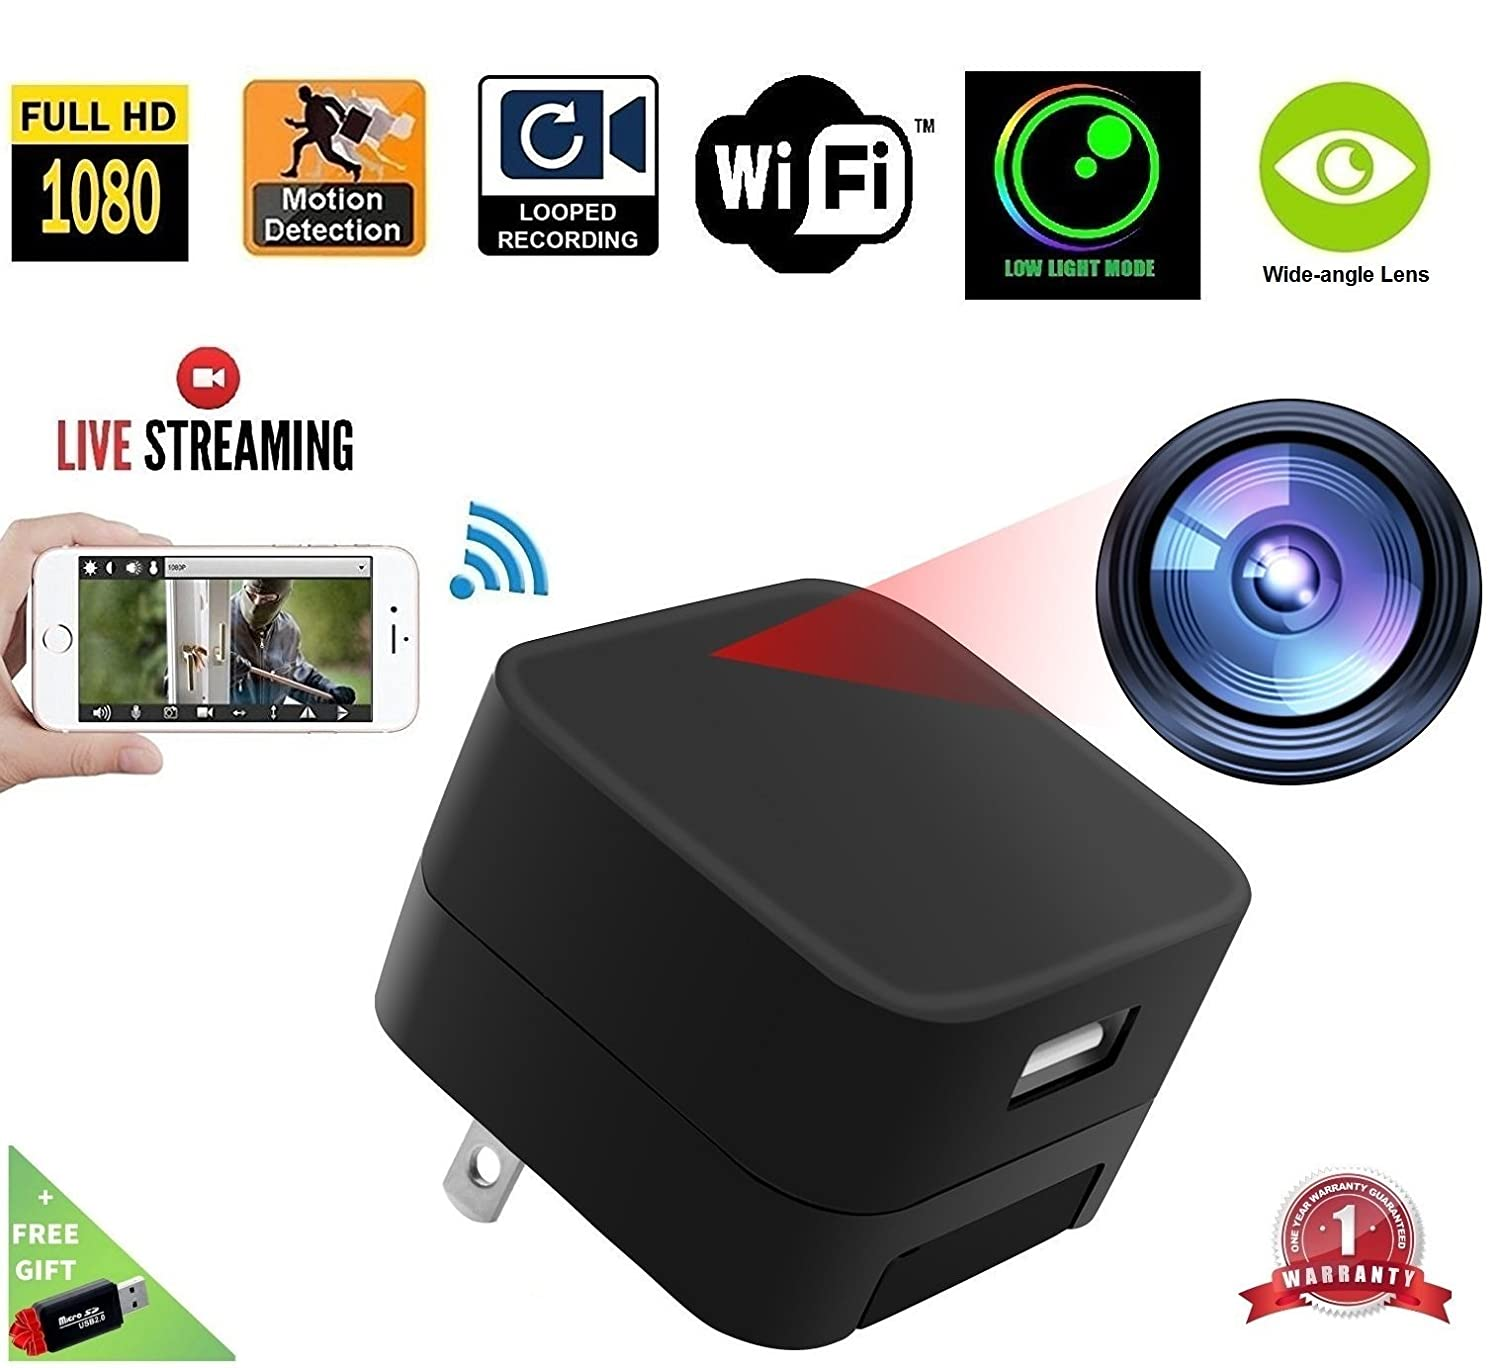 1080P USB Charger Camera WiFi - DENT Products HD Live Streaming Video Camcorder with Motion Detection, Pet Nanny Cam, USB AC Wall Plug Adapter for phone, Remote View, support 128GB SD (4th GENERATION)